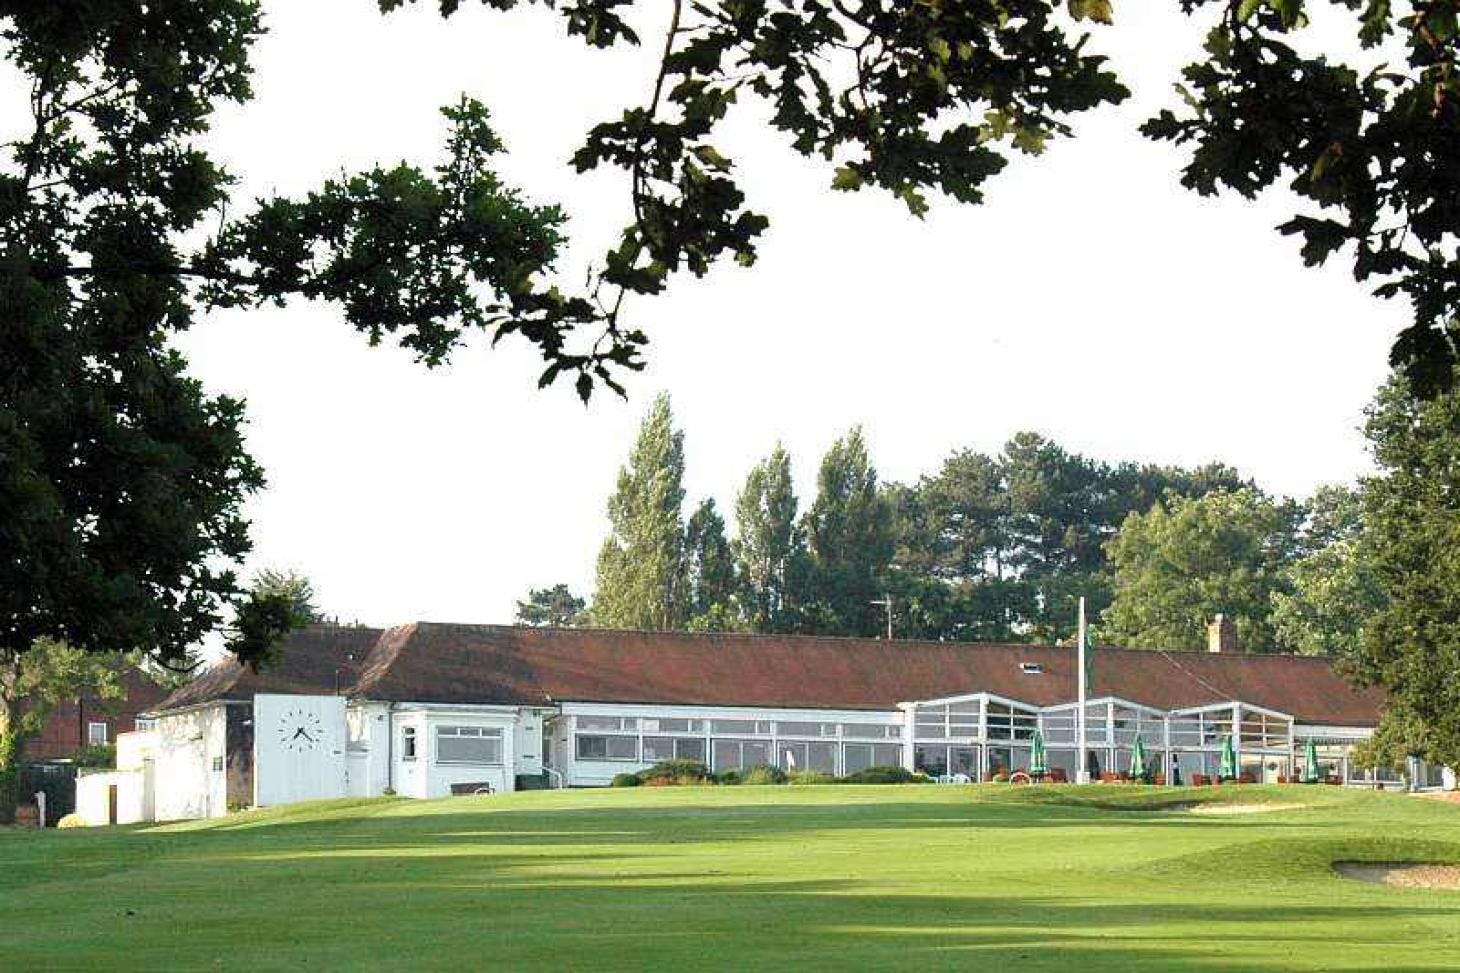 South Herts Golf Club 18 hole golf course